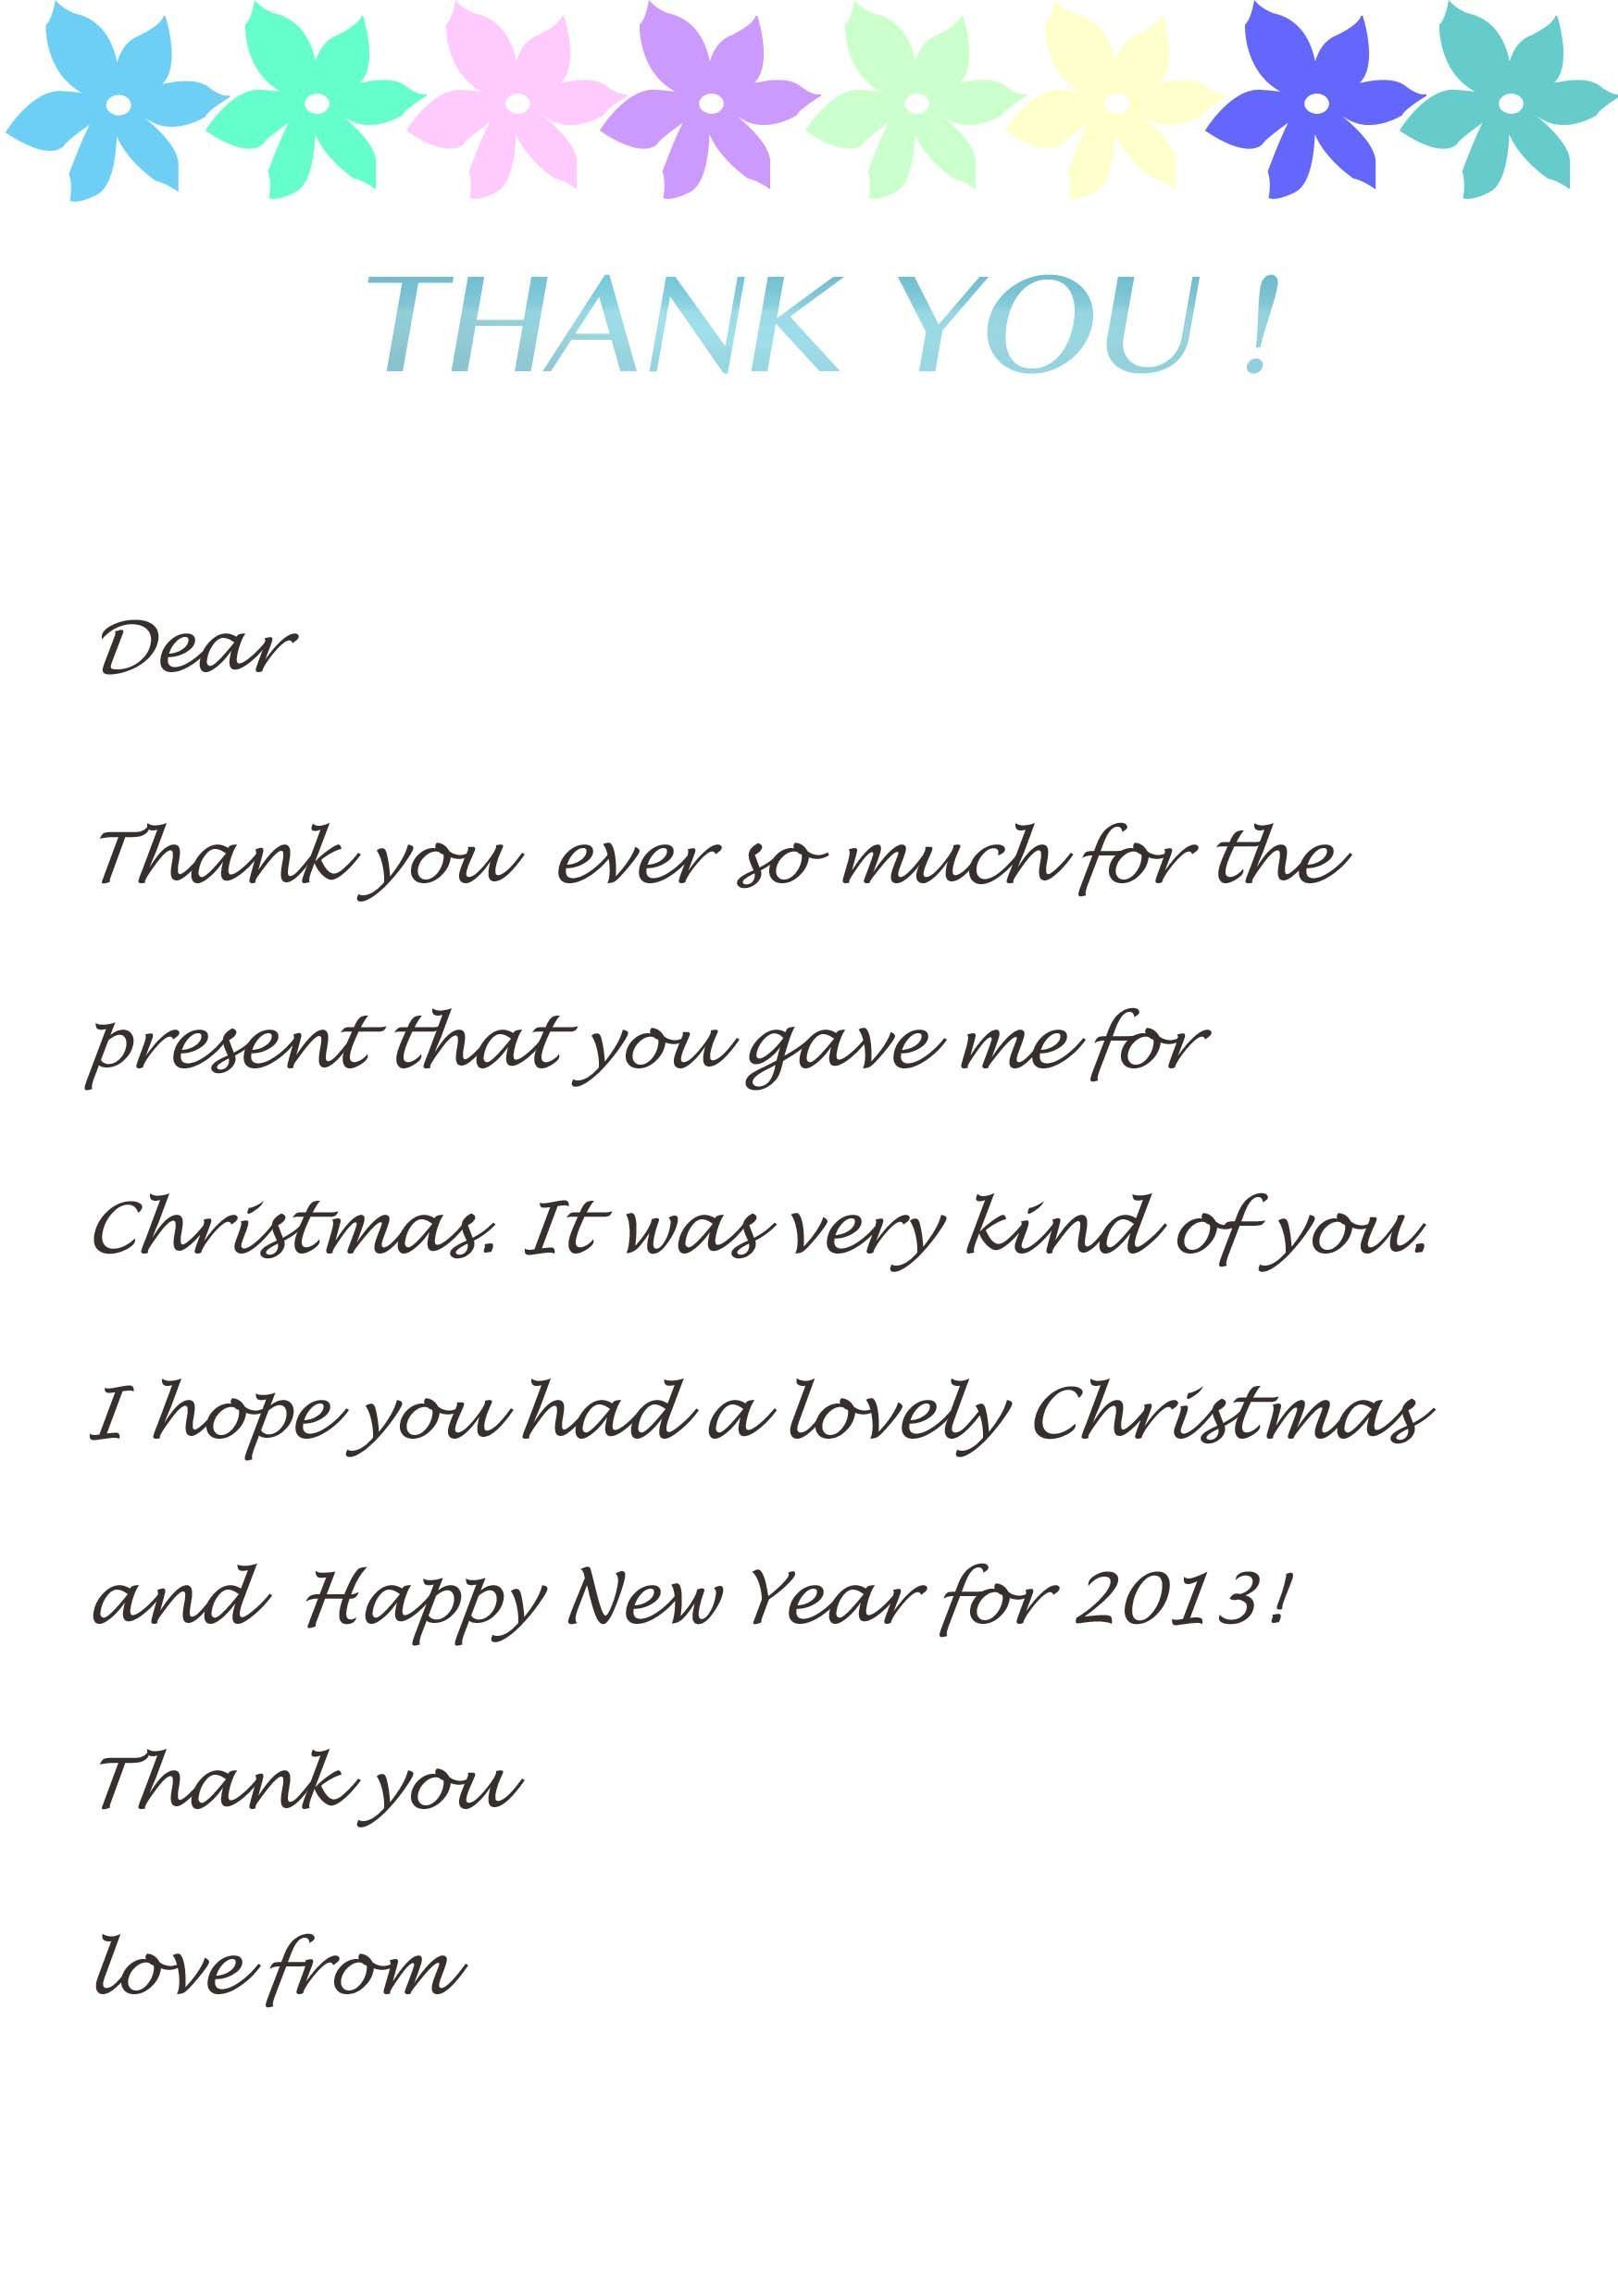 Thank you letter template for kids Christmas Fun – Christmas Card Letter Templates